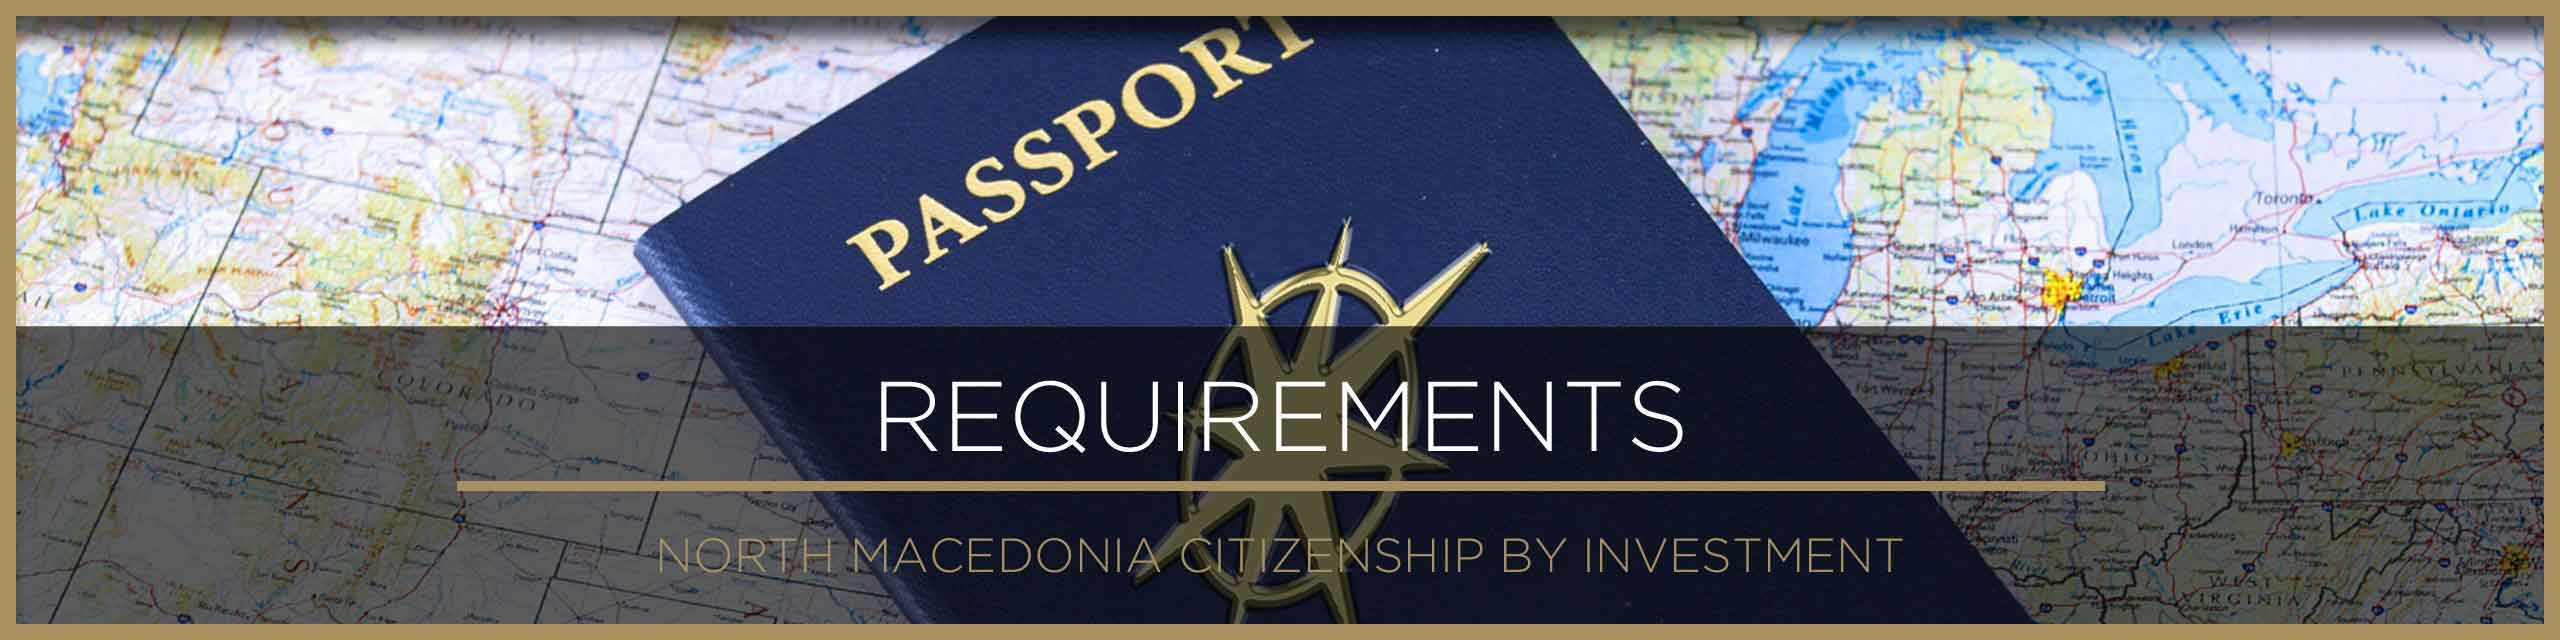 North Macedonia citizenship requirements